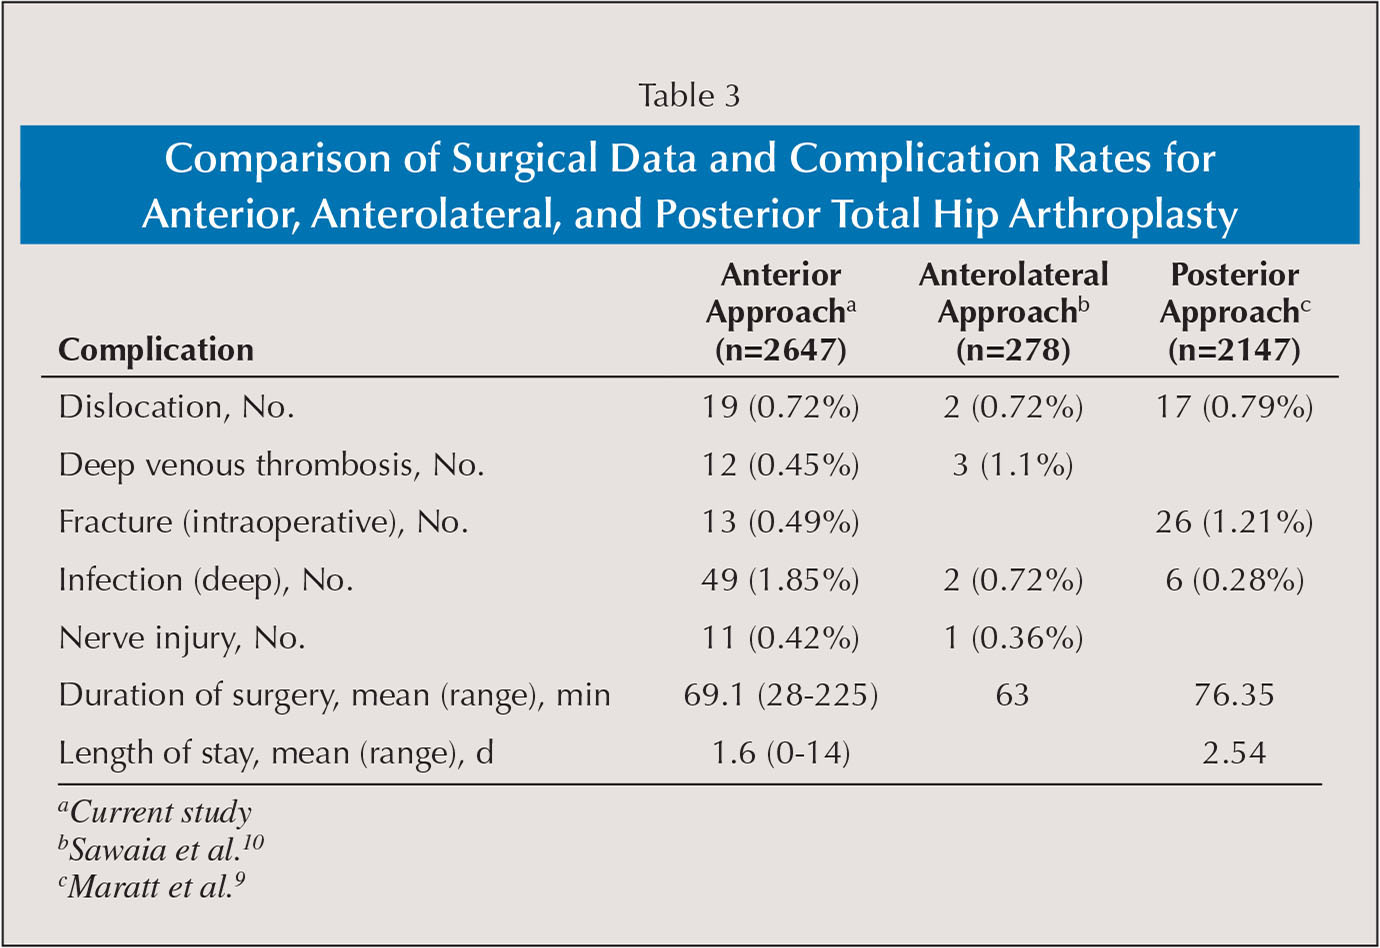 Comparison of Surgical Data and Complication Rates for Anterior, Anterolateral, and Posterior Total Hip Arthroplasty